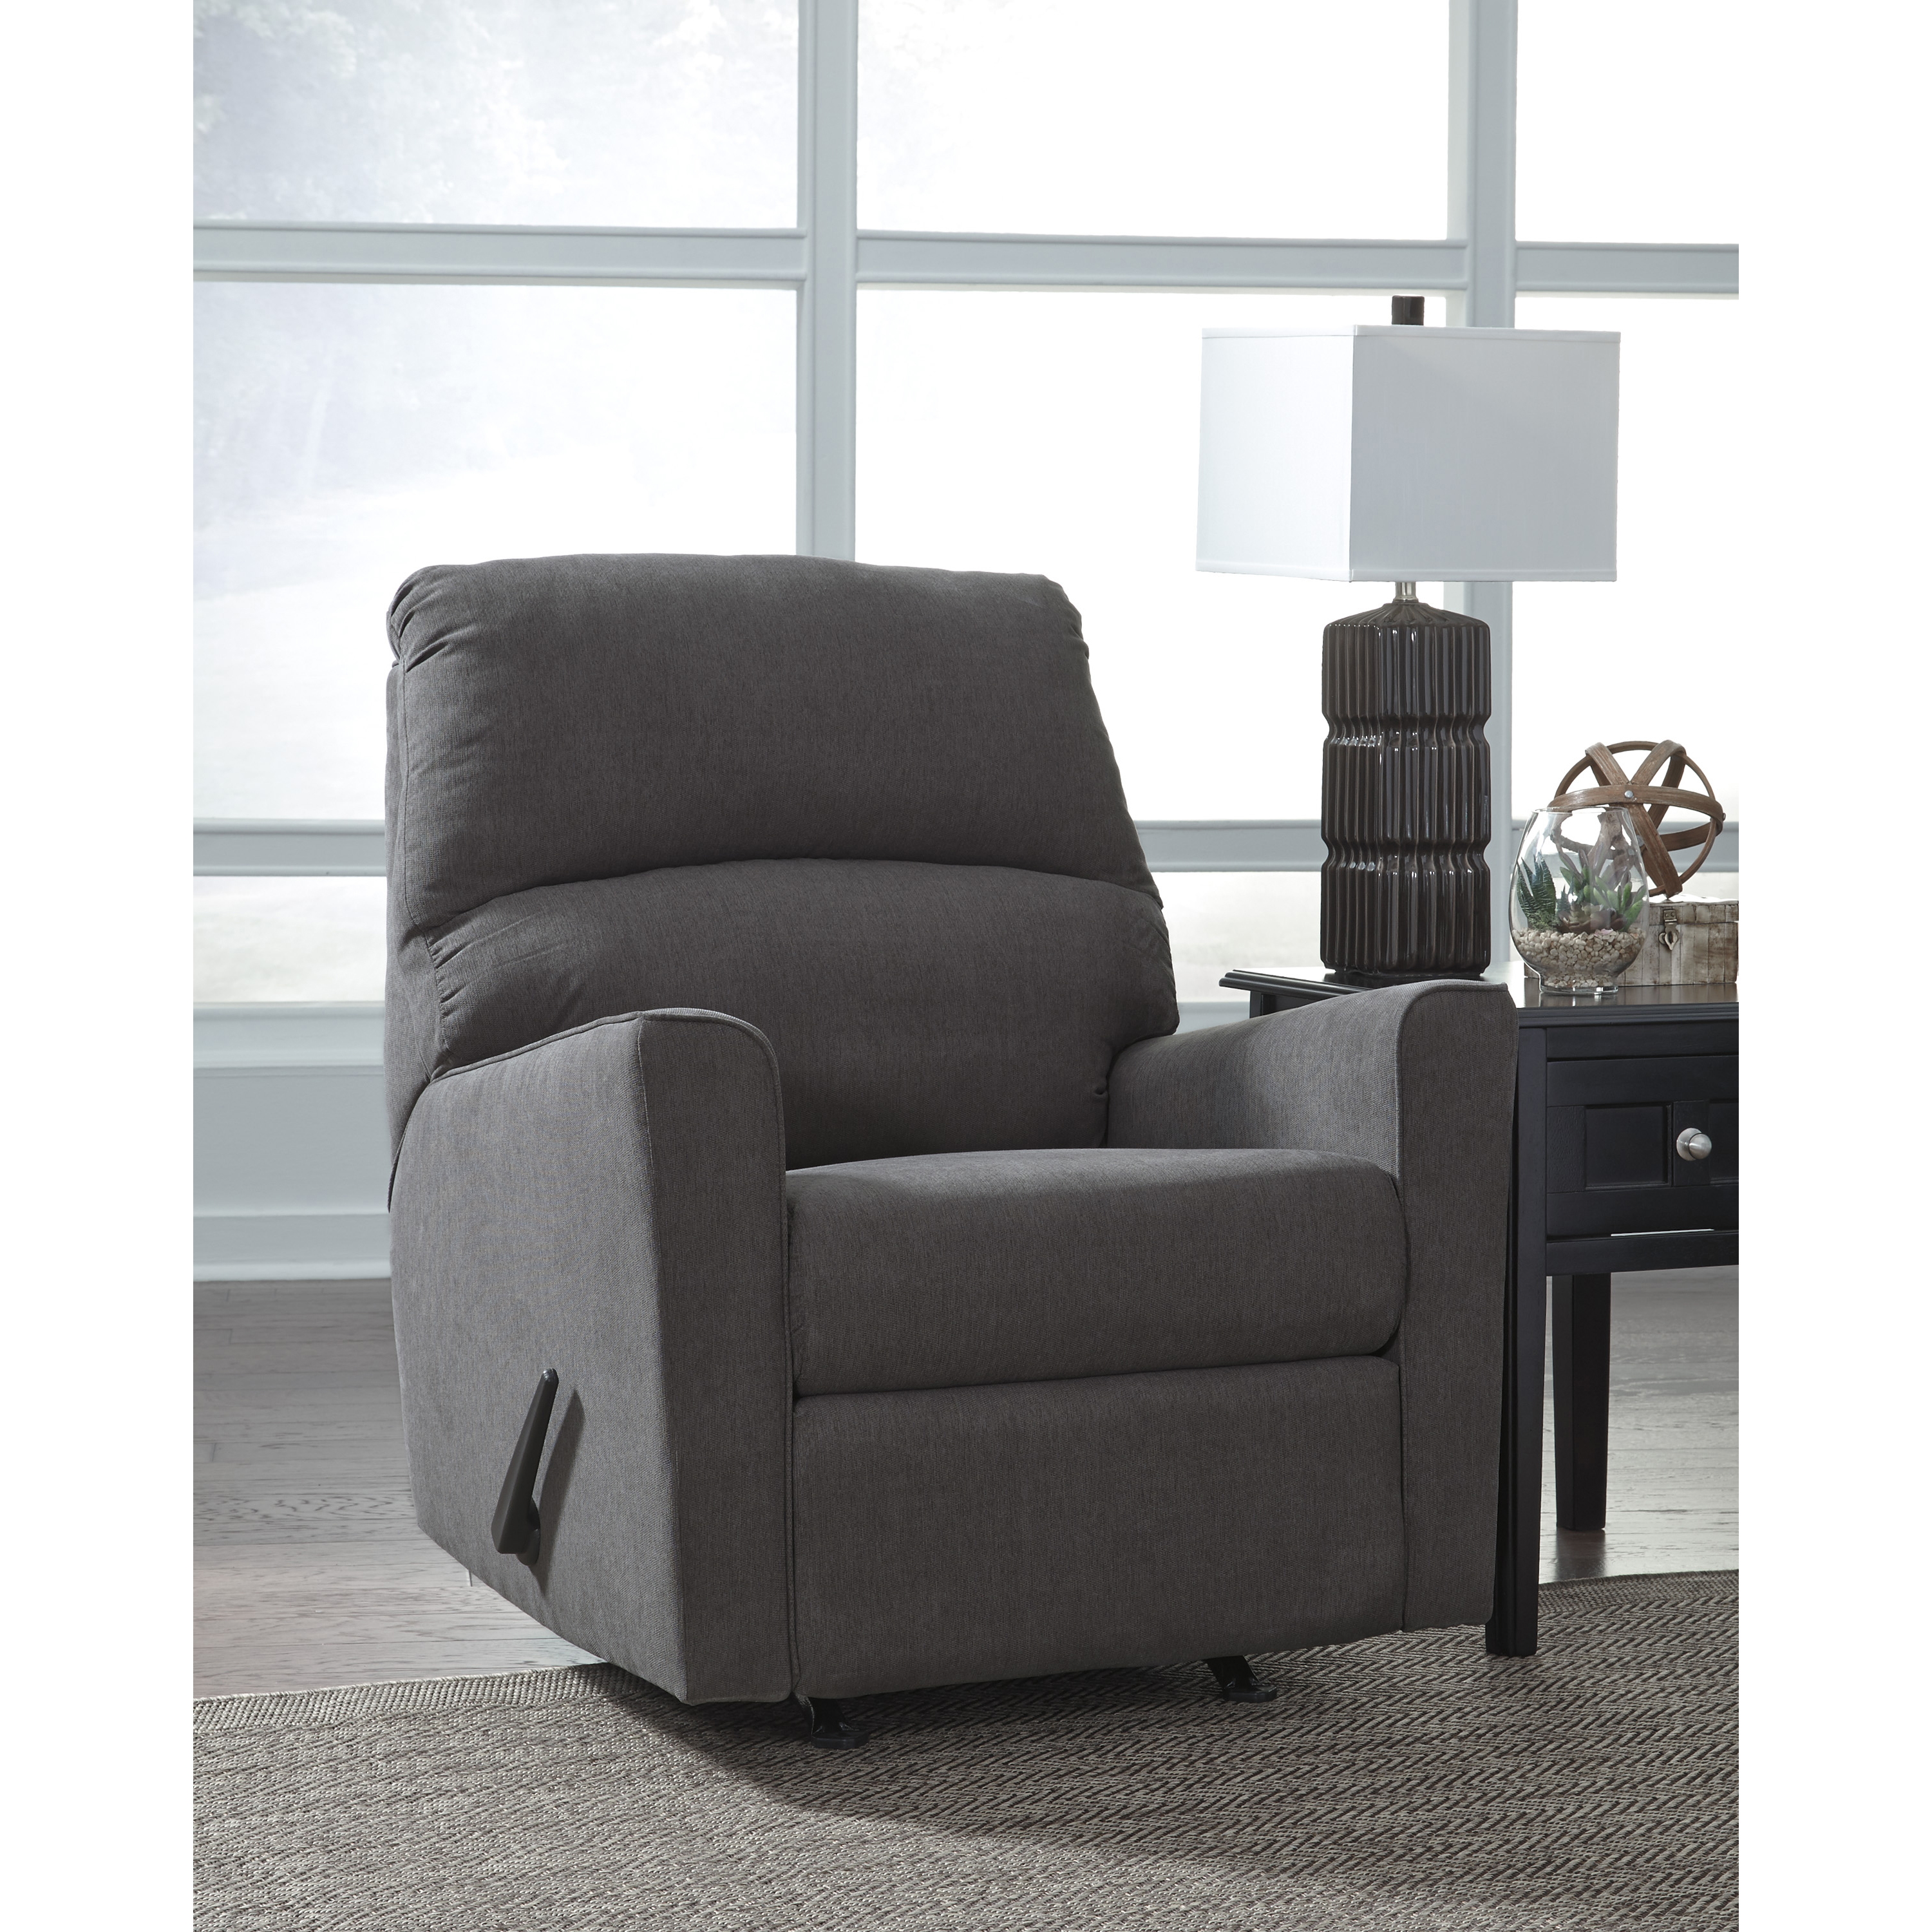 Flash Furniture Signature Design by Ashley Alenya Rocker Recliner in Charcoal Microfiber